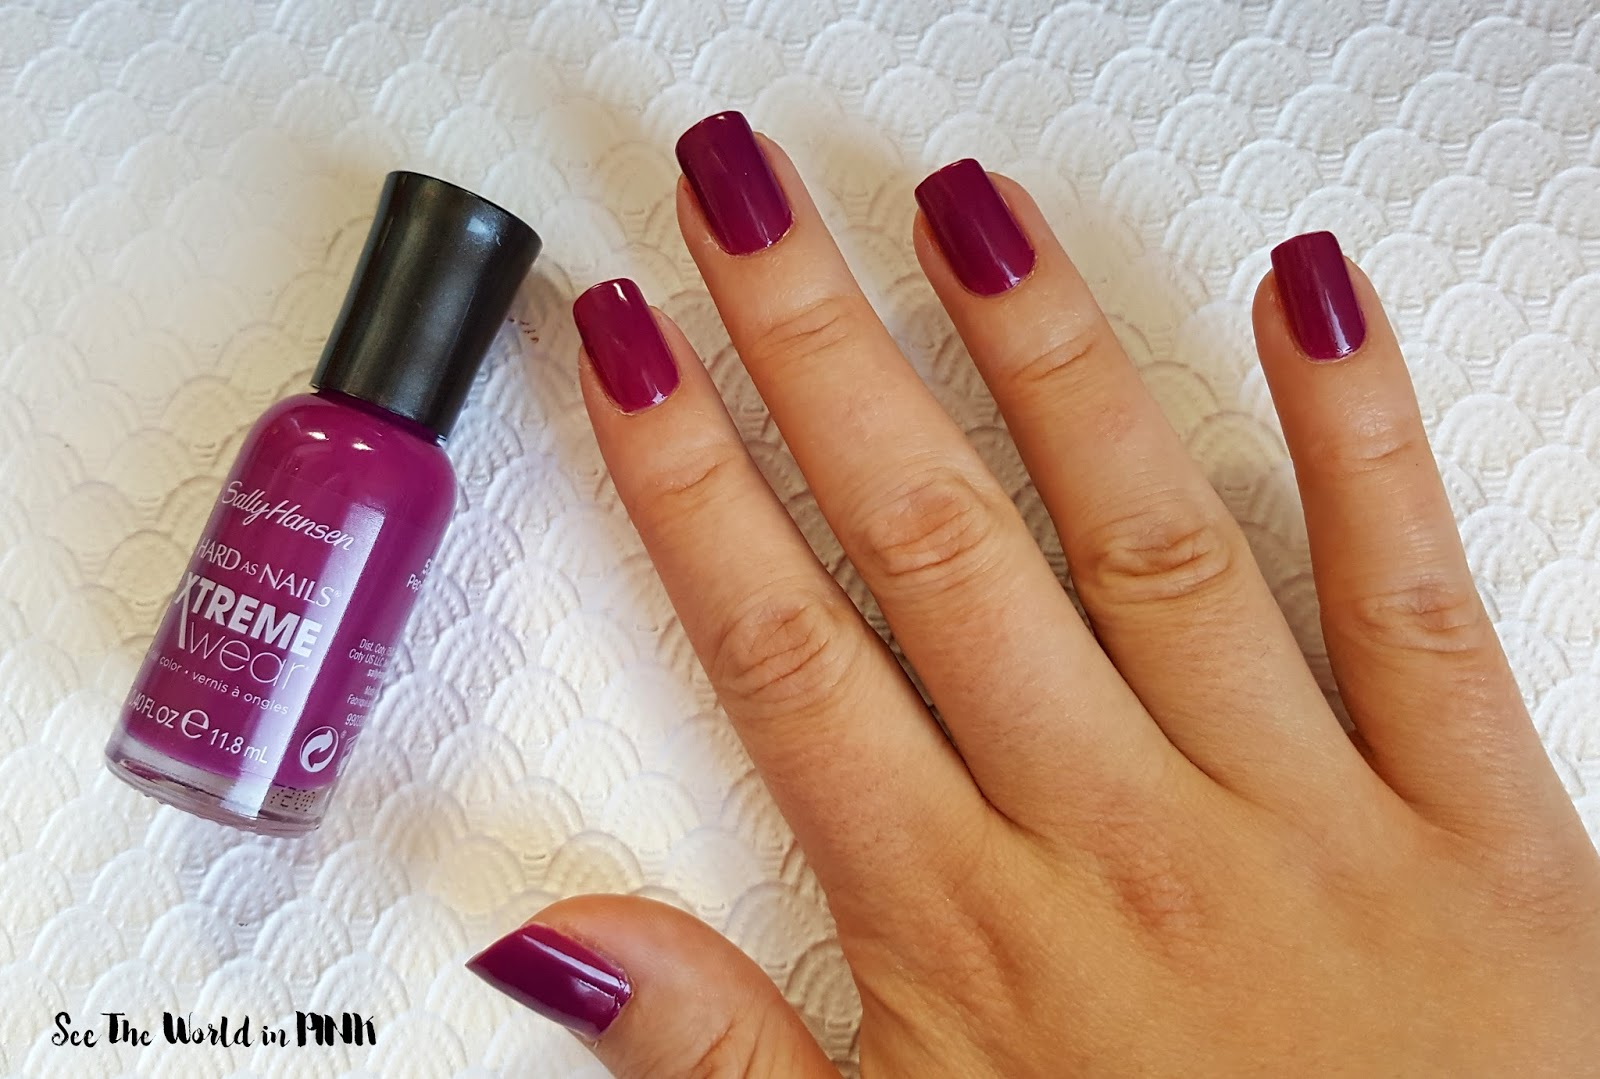 Manicure Tuesday - Sally Hansen Hard As Nails Xtreme Wear Polish in Pep-plum!